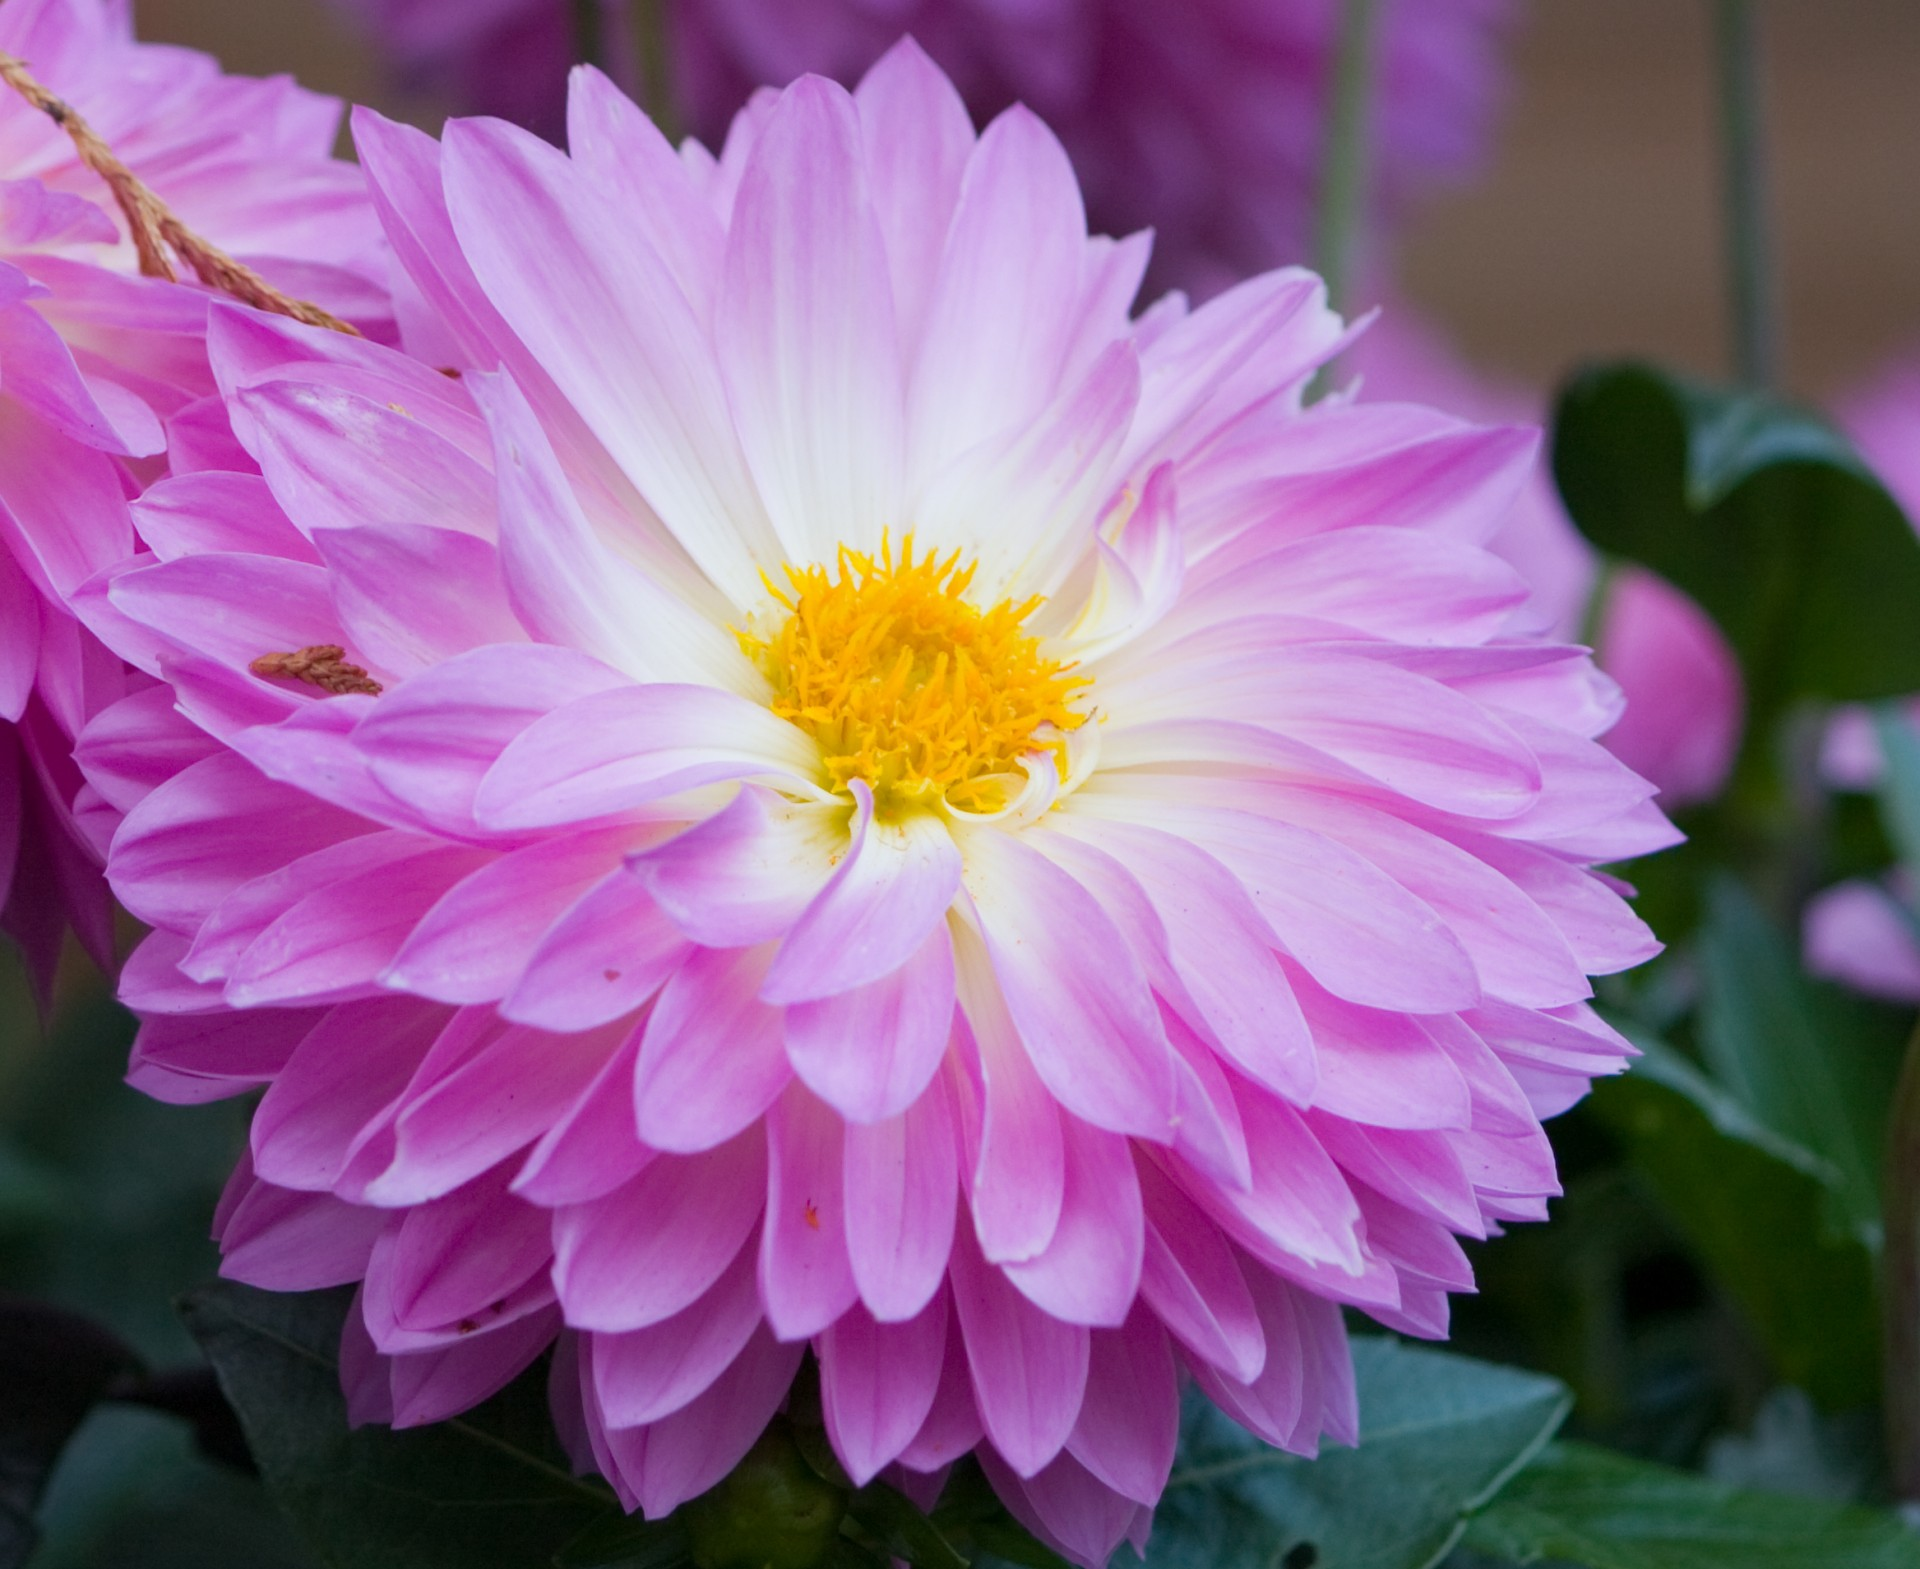 Flower,dahlia,lavender,pink,beautiful - free photo from